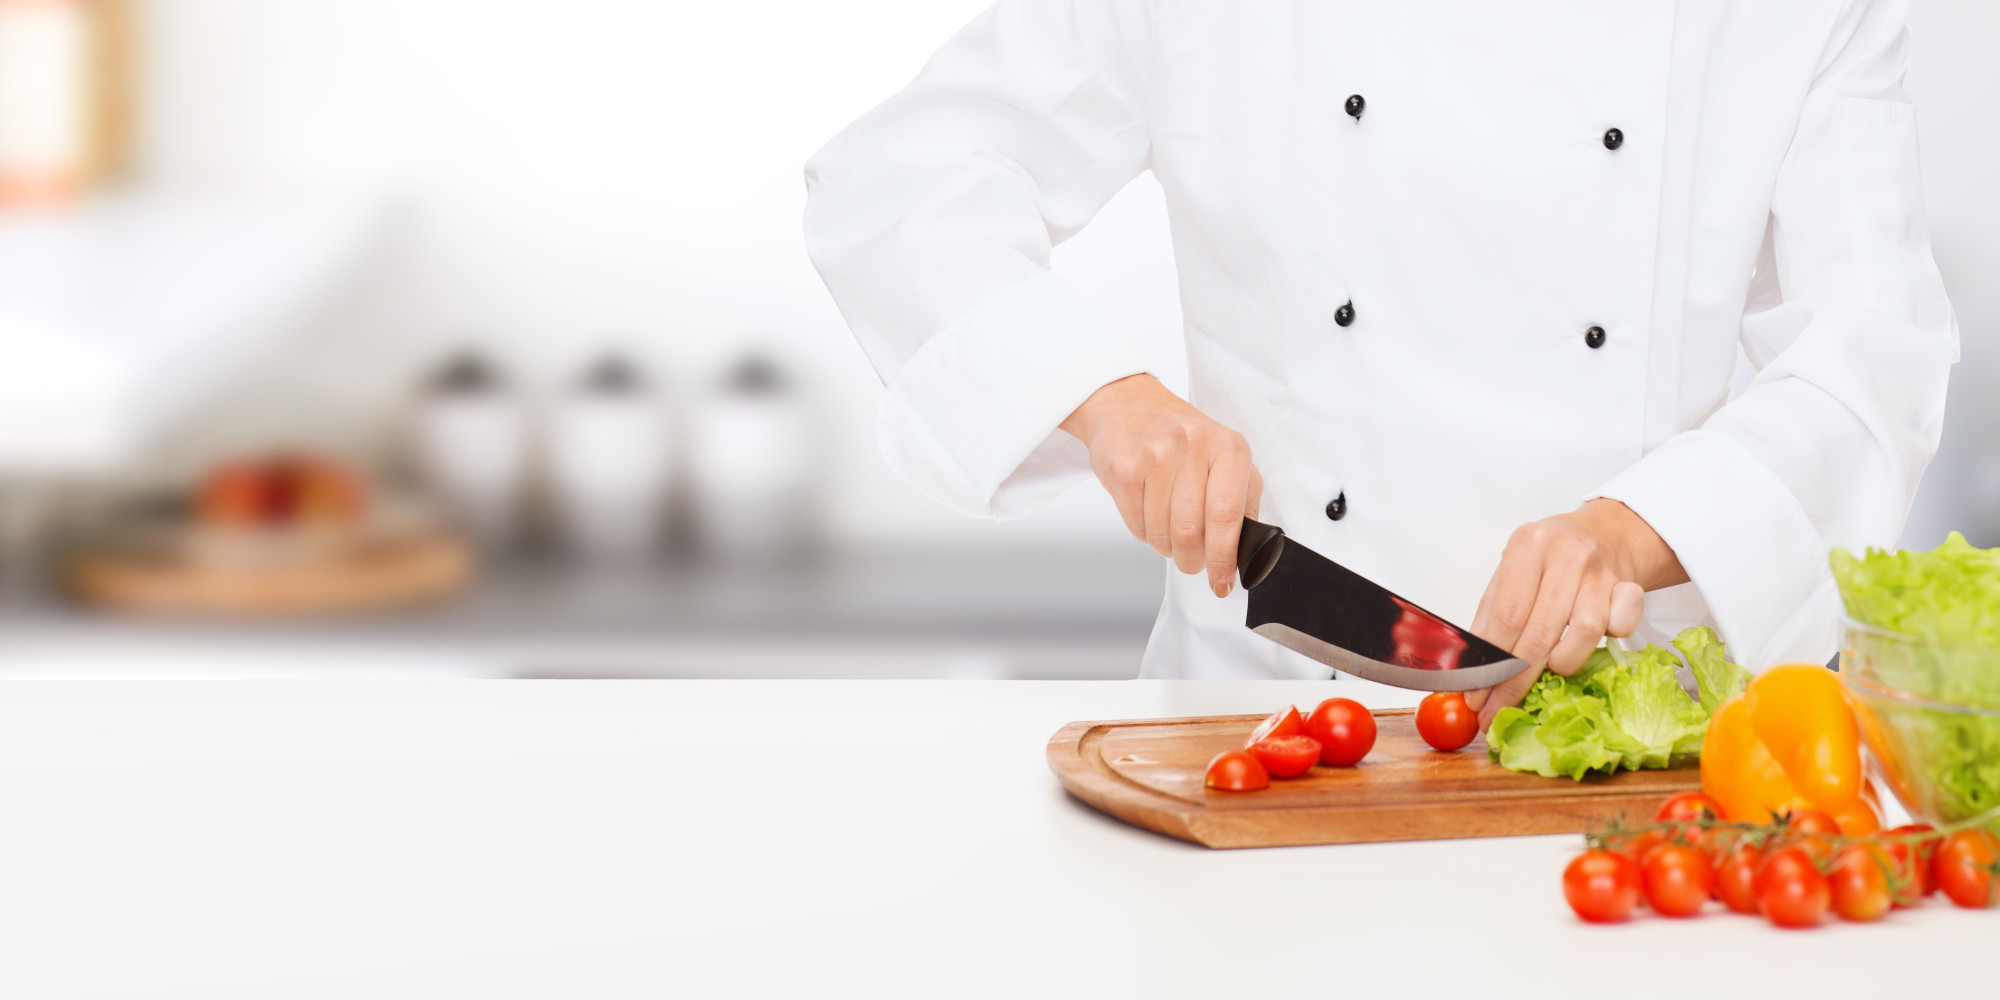 chinese frequent food safety incidents The food & beverage market in china 12 food & beverage sales in china the chinese food & beverage of income spent on pre-packaged food and more frequent restaurant meals these food safety incidents have had a.